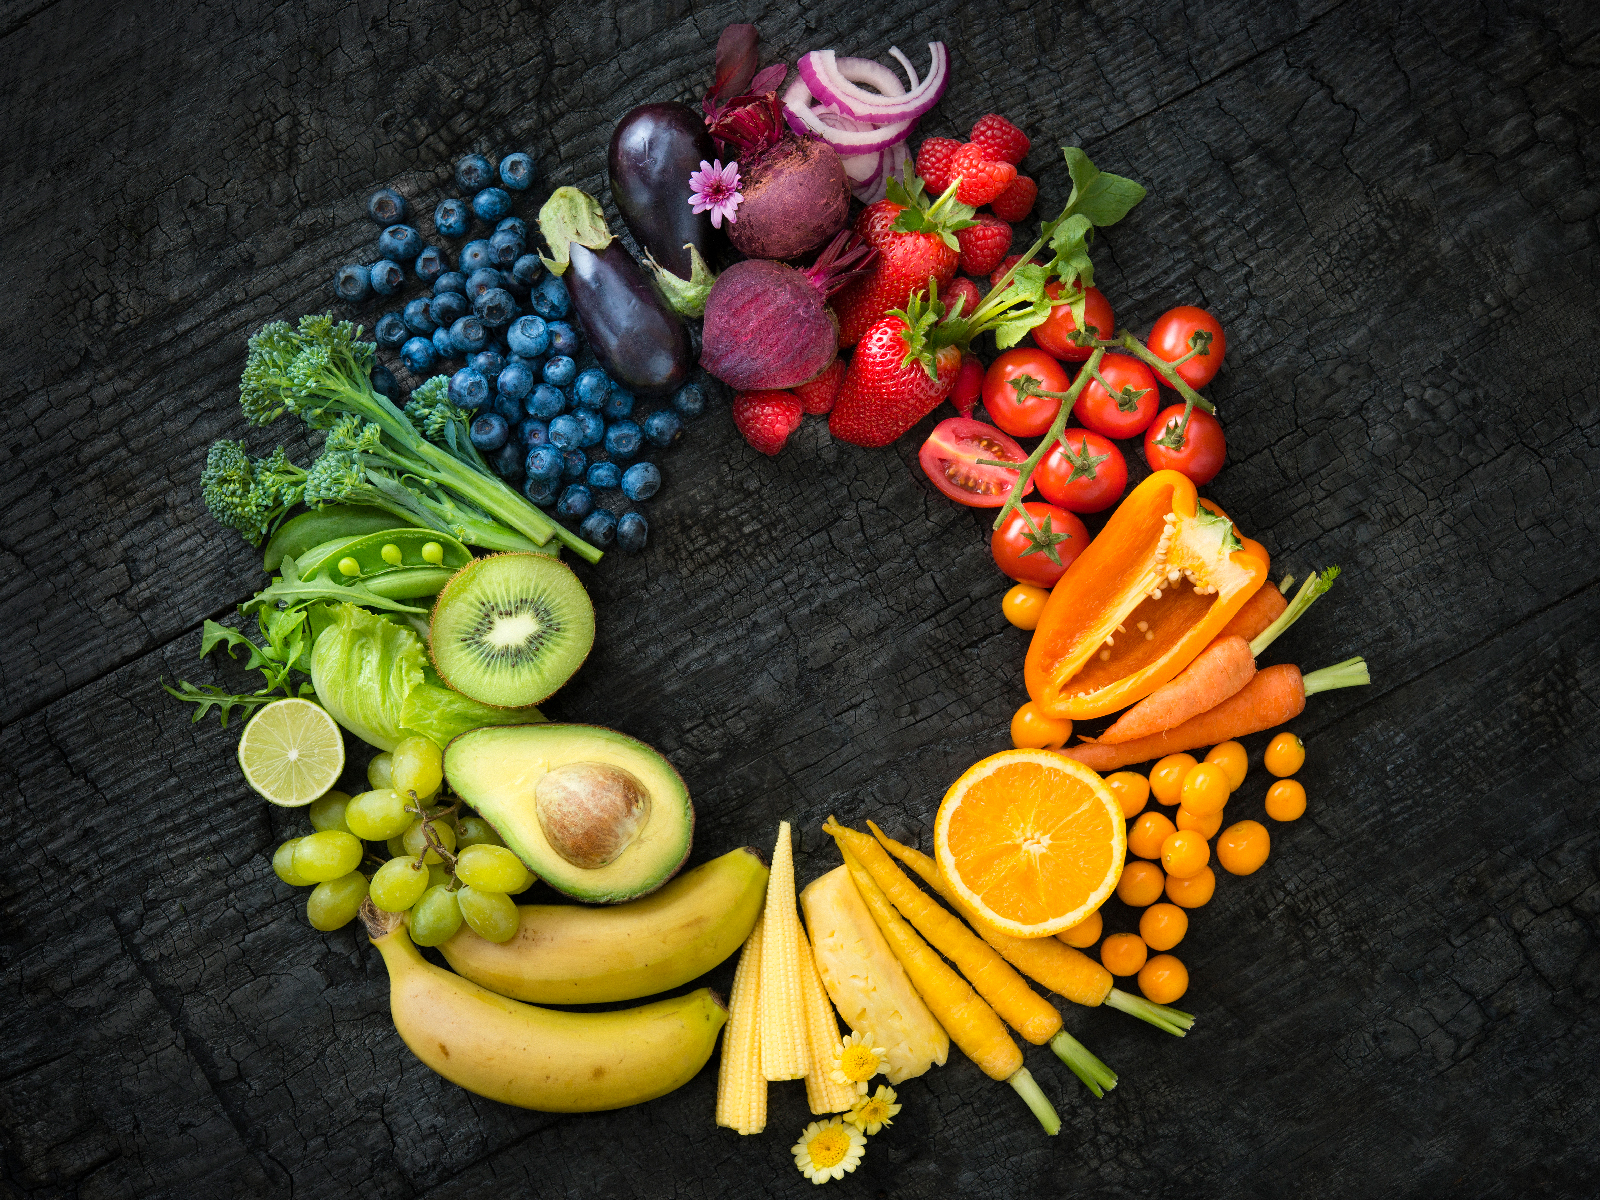 If Everyone Started Eating the Recommended Amount of Fruits and Vegetables, There Wouldn't Be Enough